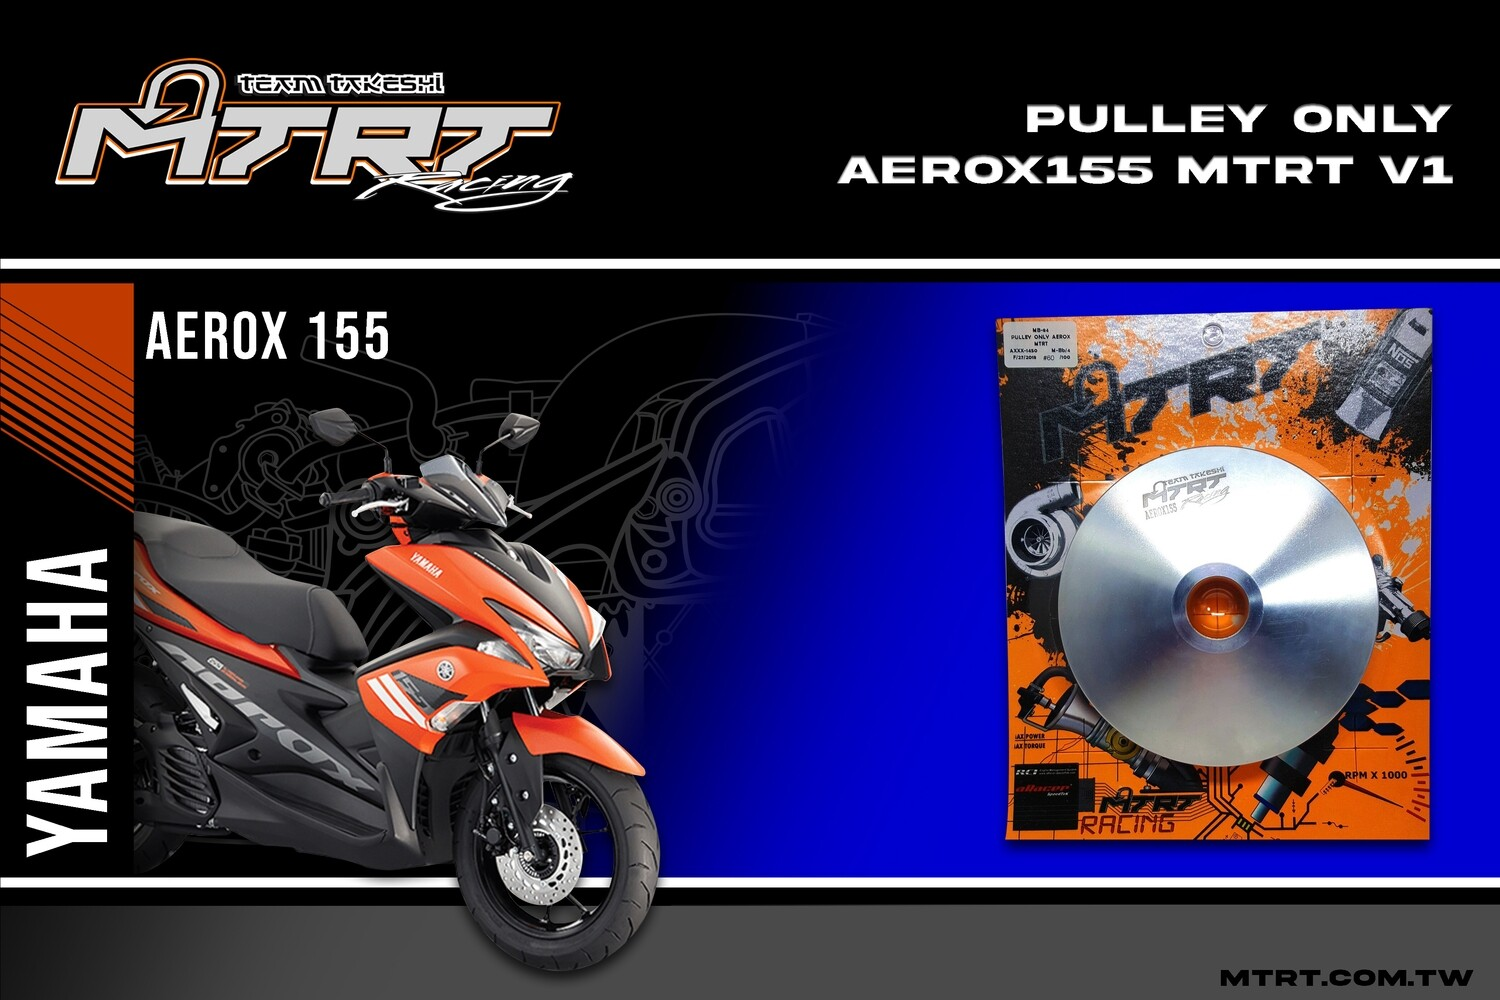 PULLEY  ONLY  AEROX155  MTRT